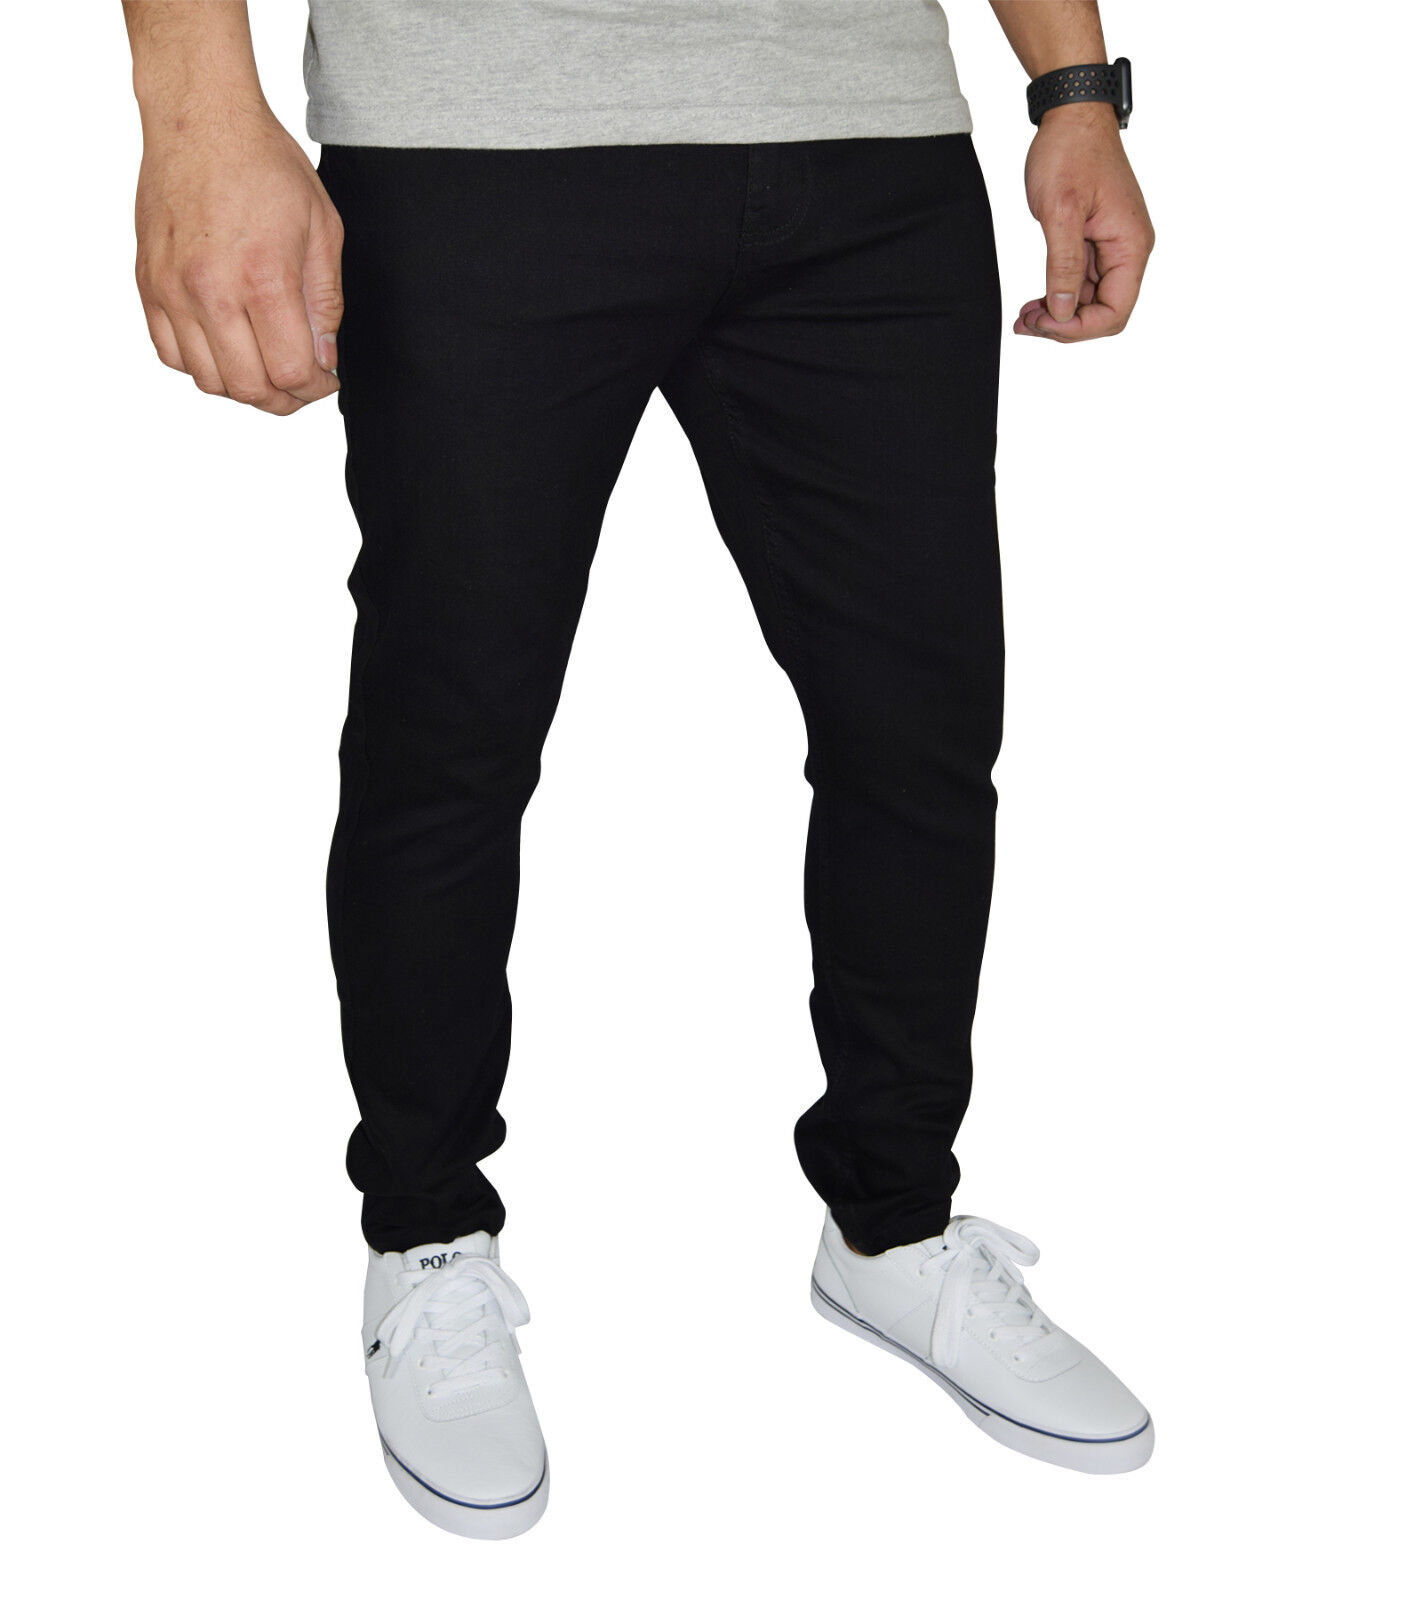 Mens Stretch Skinny Fit Jeans Super Spandex Denim Pants Clothing, Shoes & Accessories